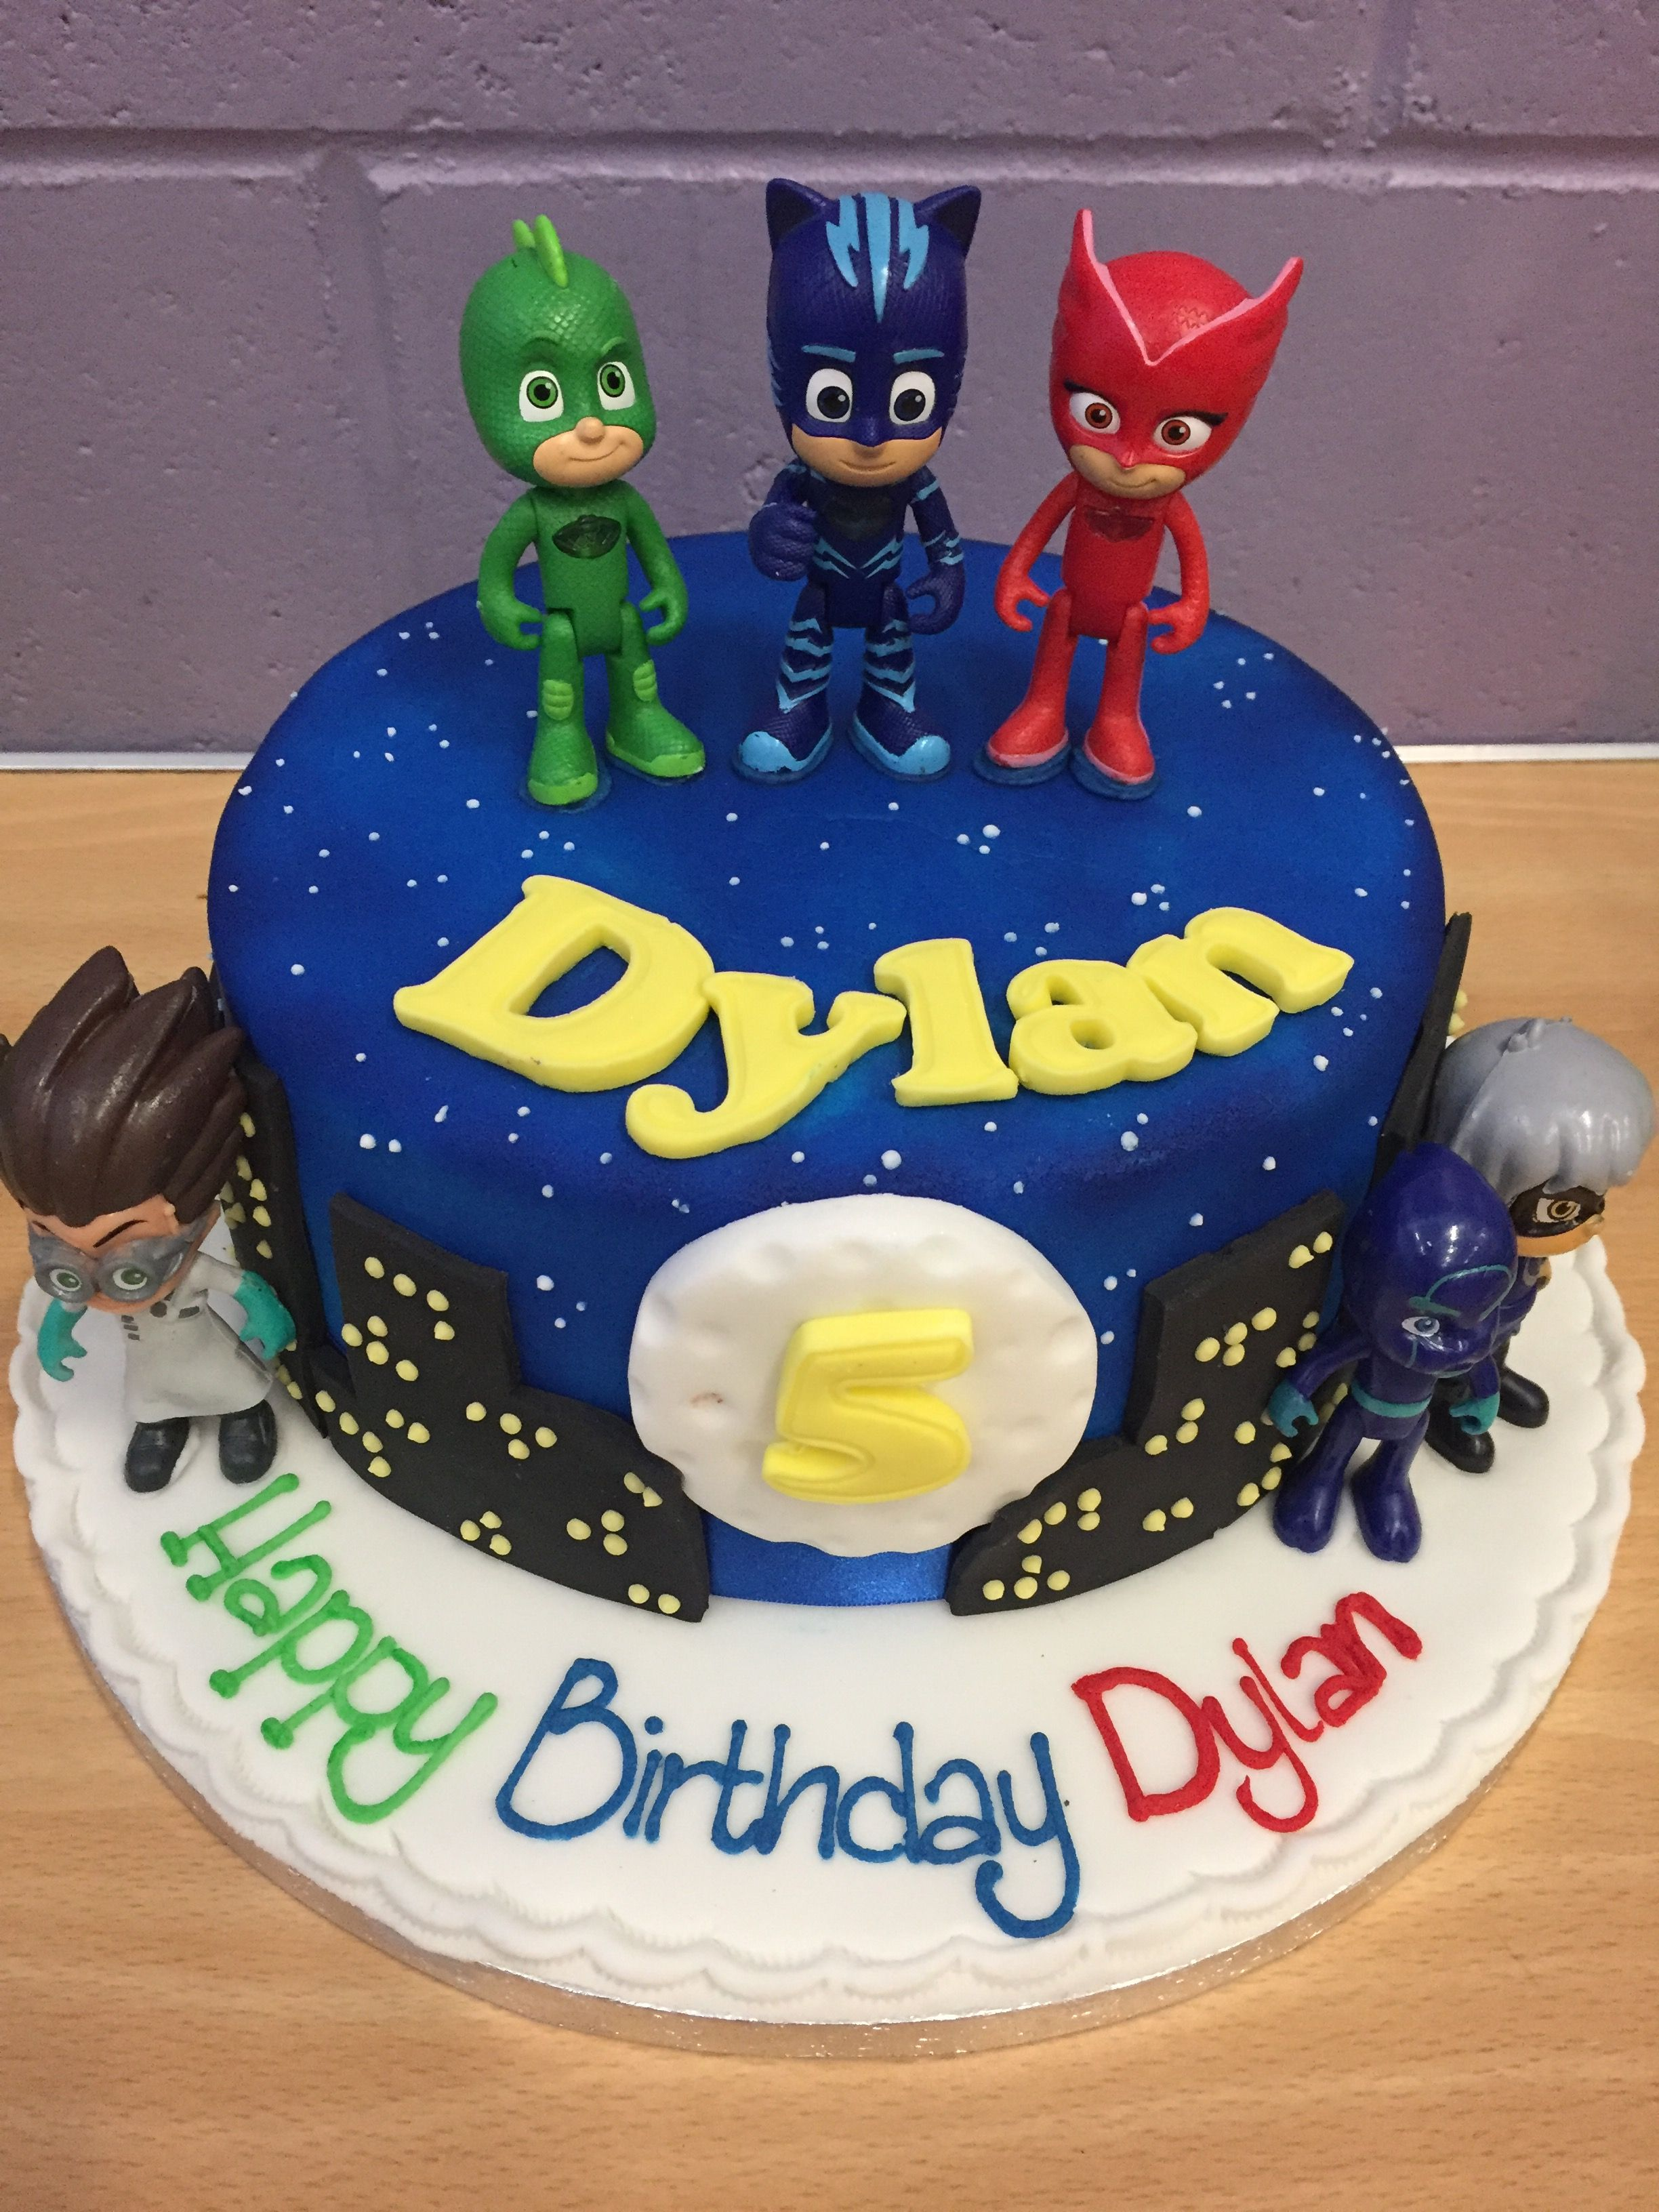 Pj Masks Birthday Cake With Images Pj Masks Birthday Cake